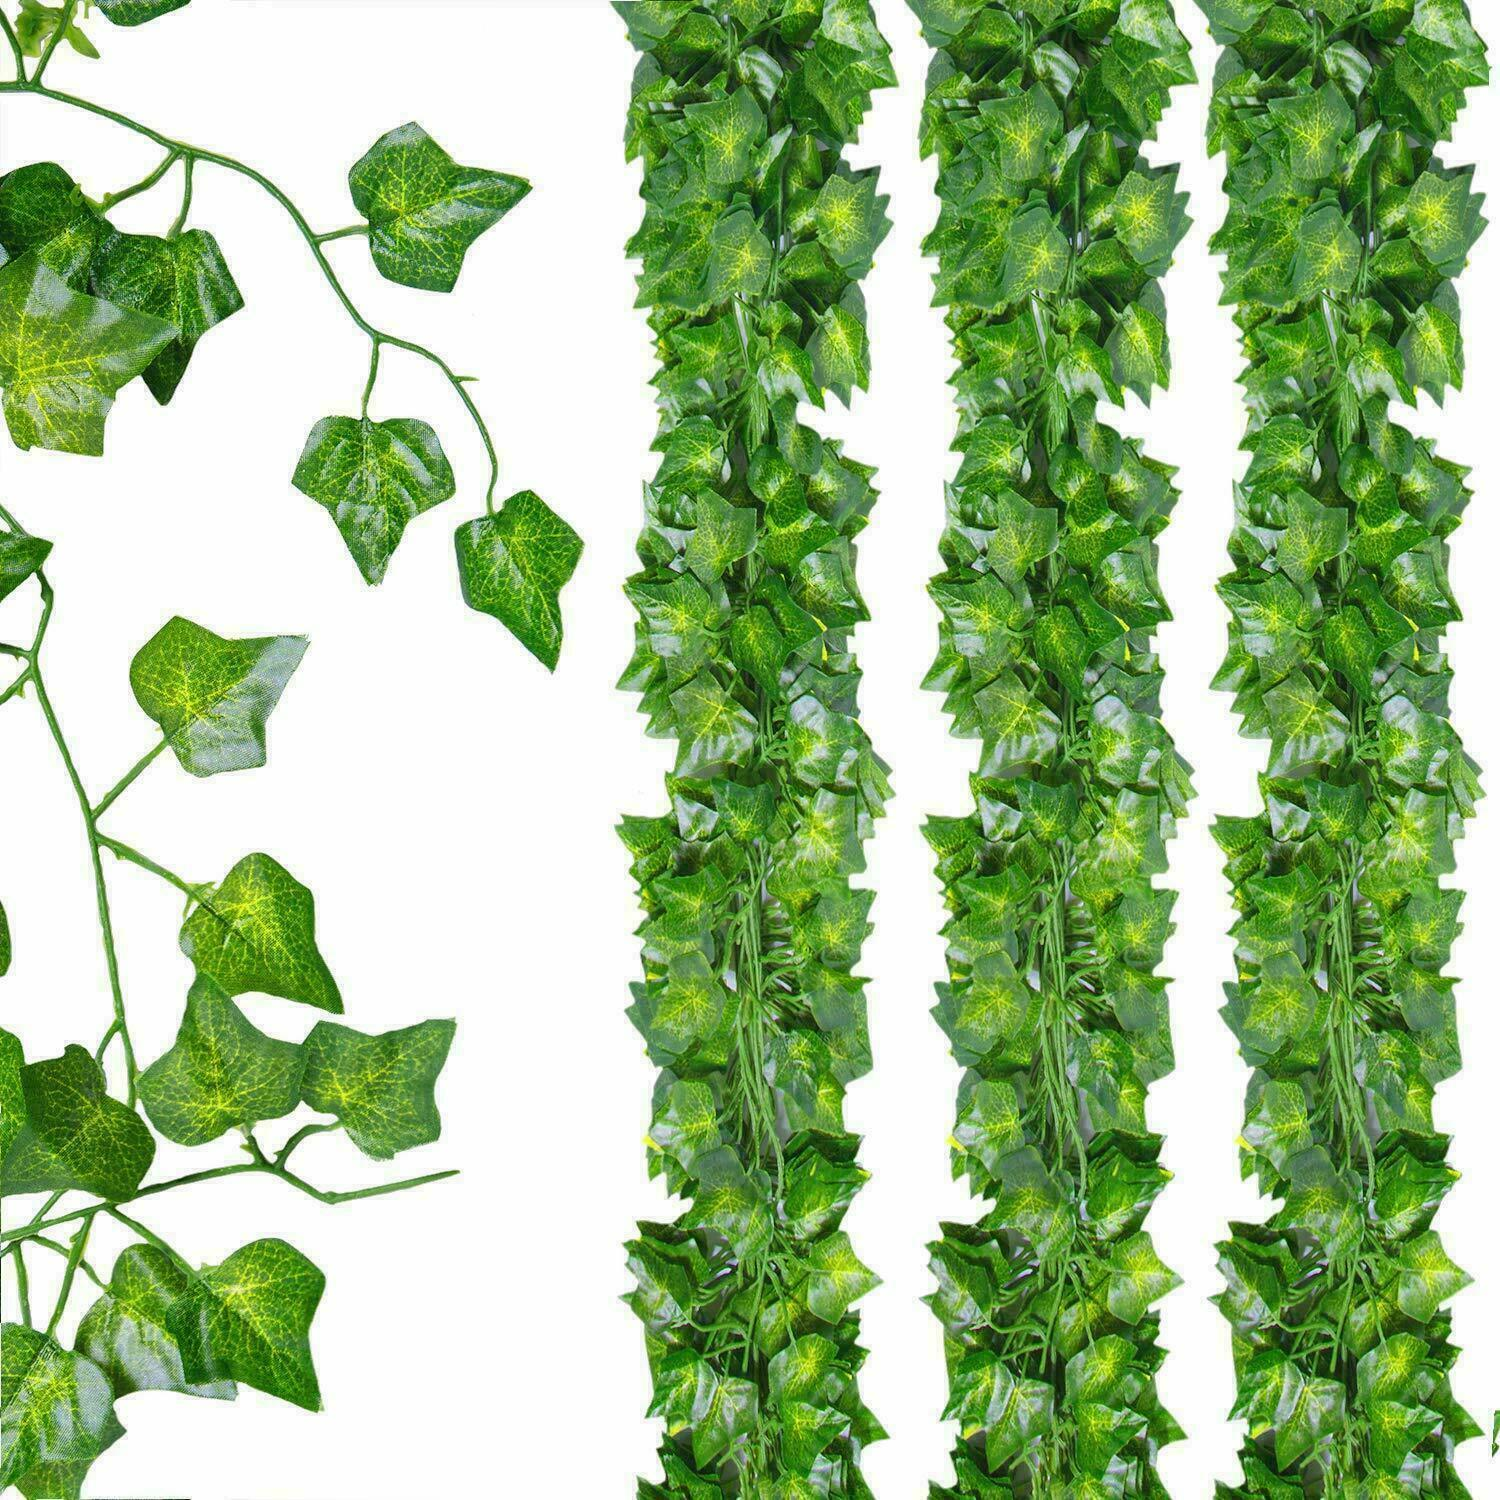 Home Decoration - Artificial Ivy Leaf Fake Plants Hanging Garland Plants Vine Foliage Home Decor